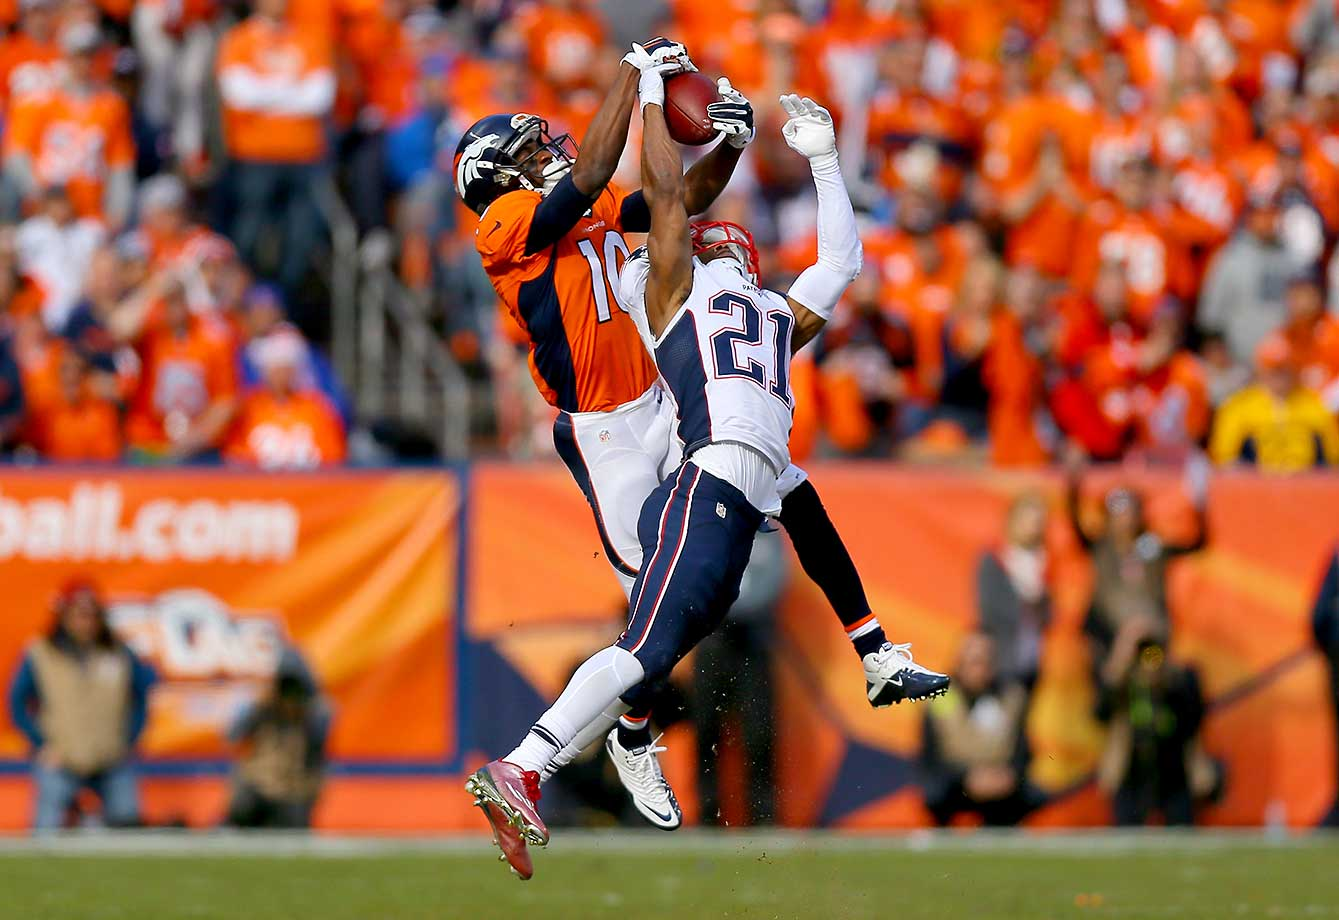 Emmanuel Sanders makes a catch for a first down over Malcolm Butler in the first quarter.